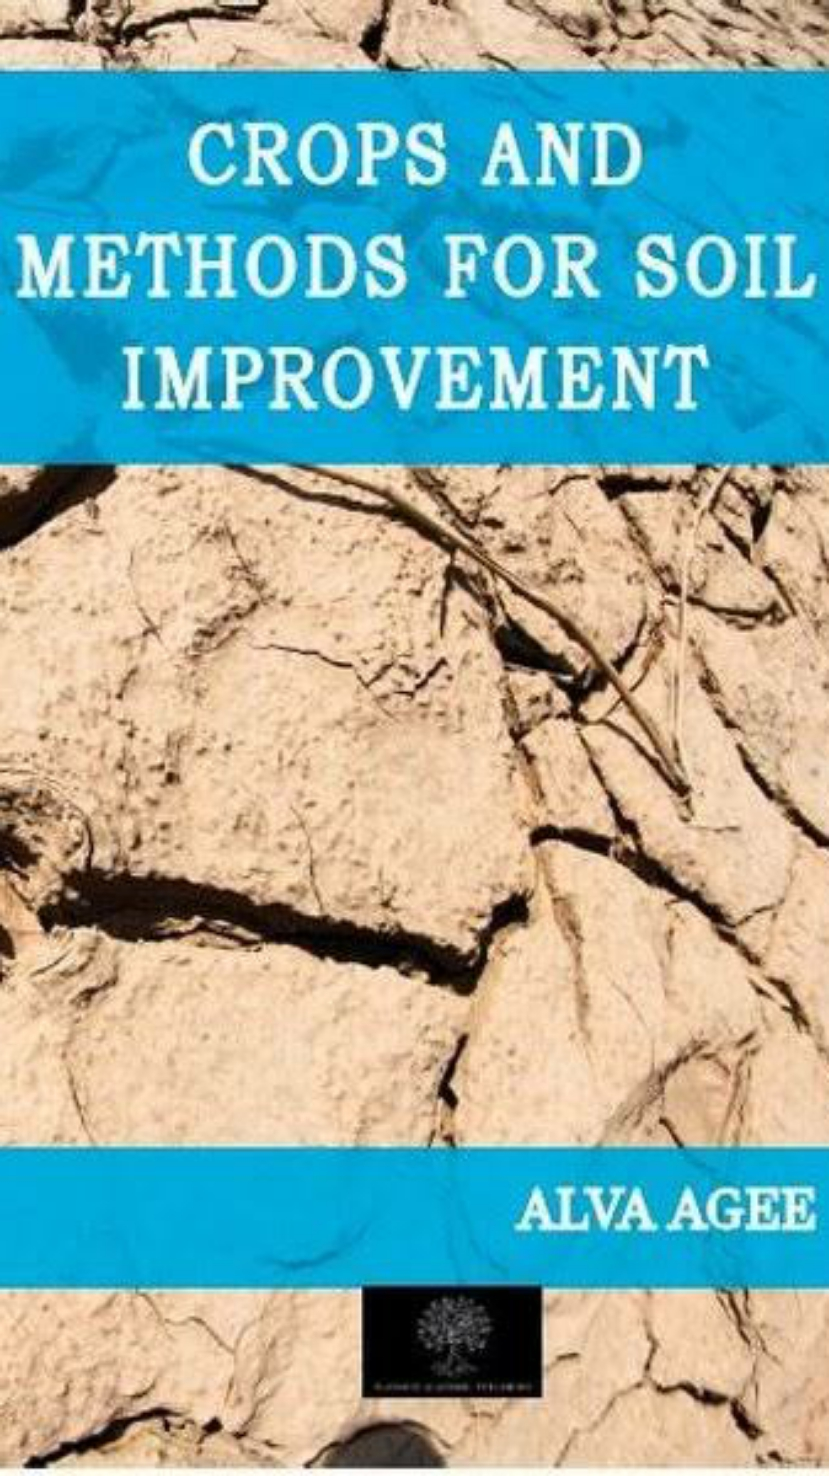 Download Crops and Methods for Soil Improvement By ALVA AGEE, M.S. (Pdf) Textbook